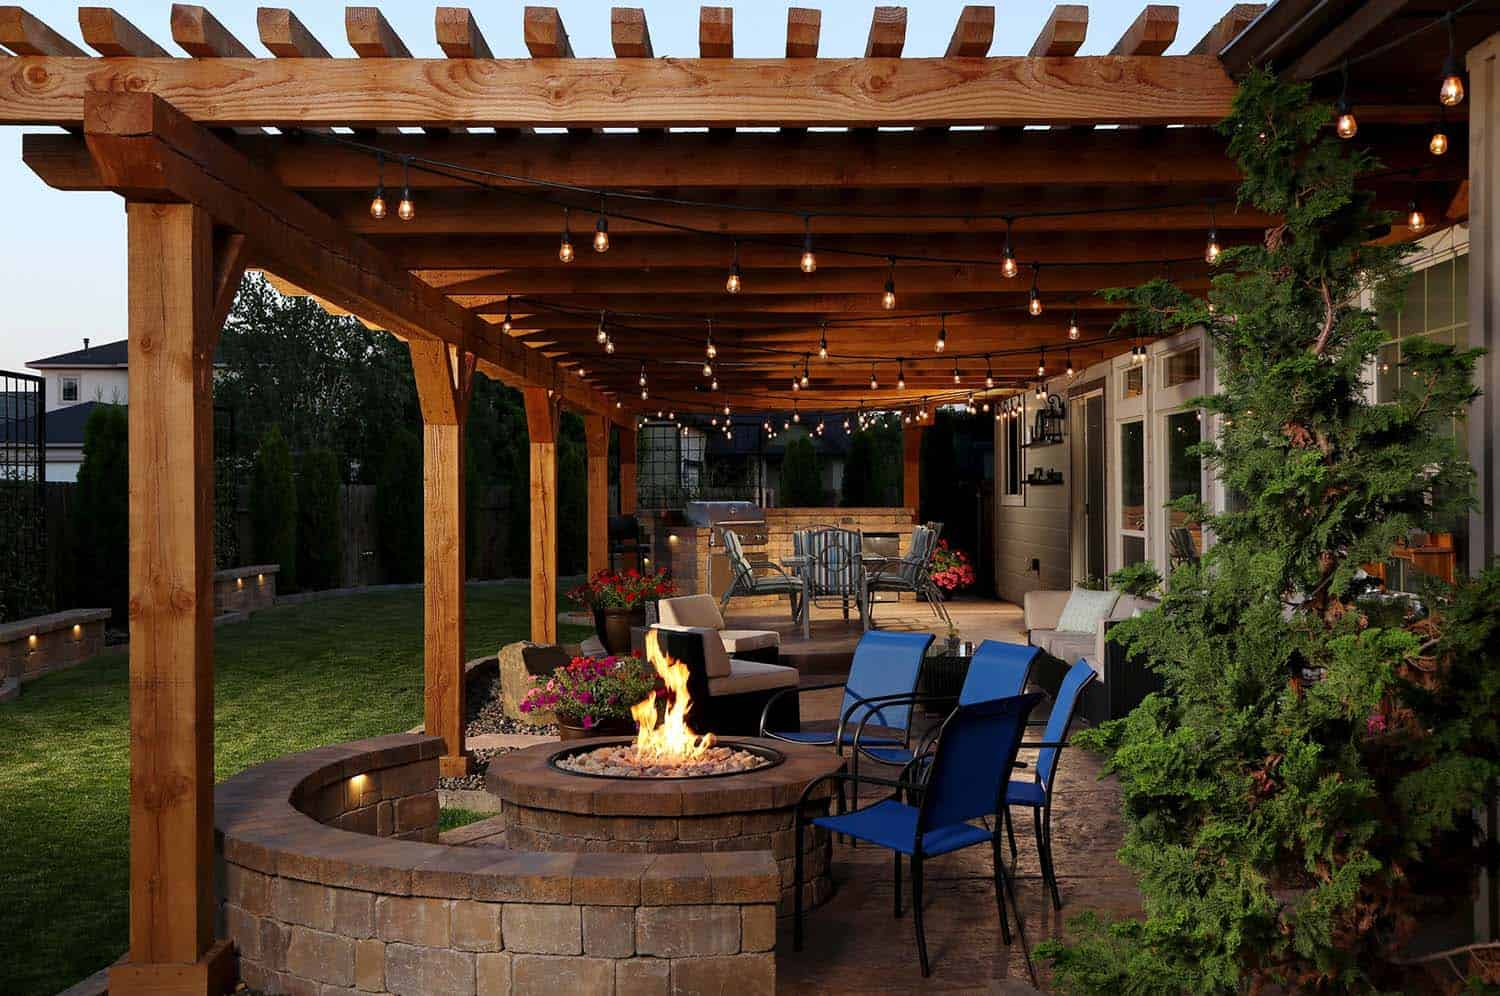 Inspiring String Light Ideas For Outdoors-16-1 Kindesign